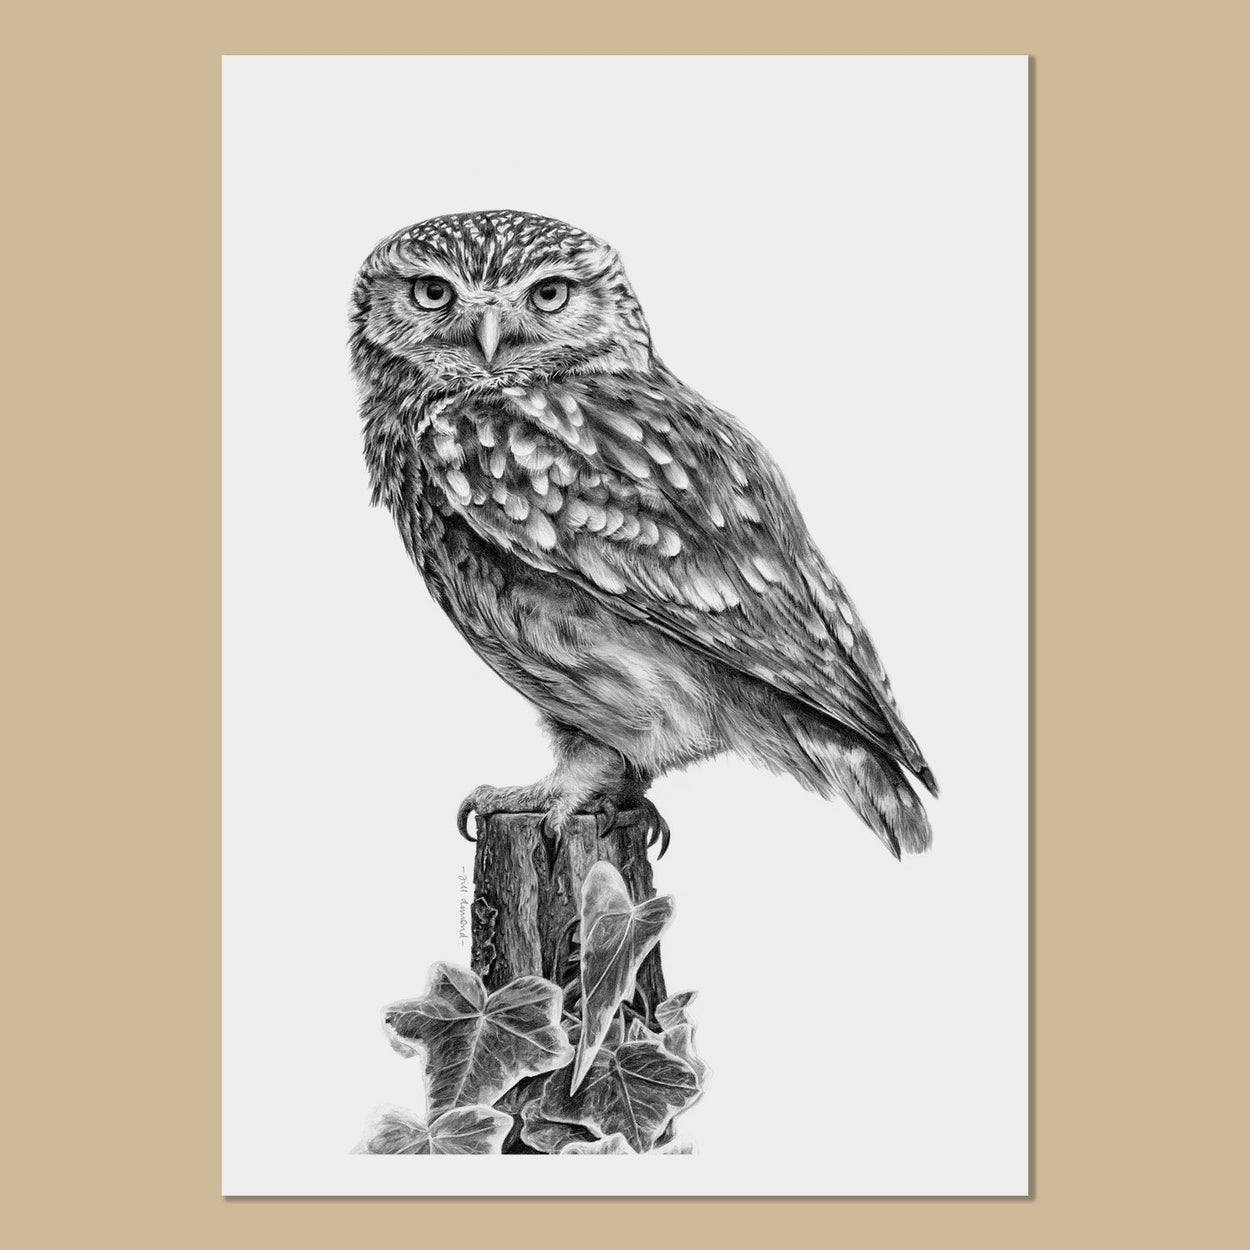 Little Owl Art Prints - The Thriving Wild